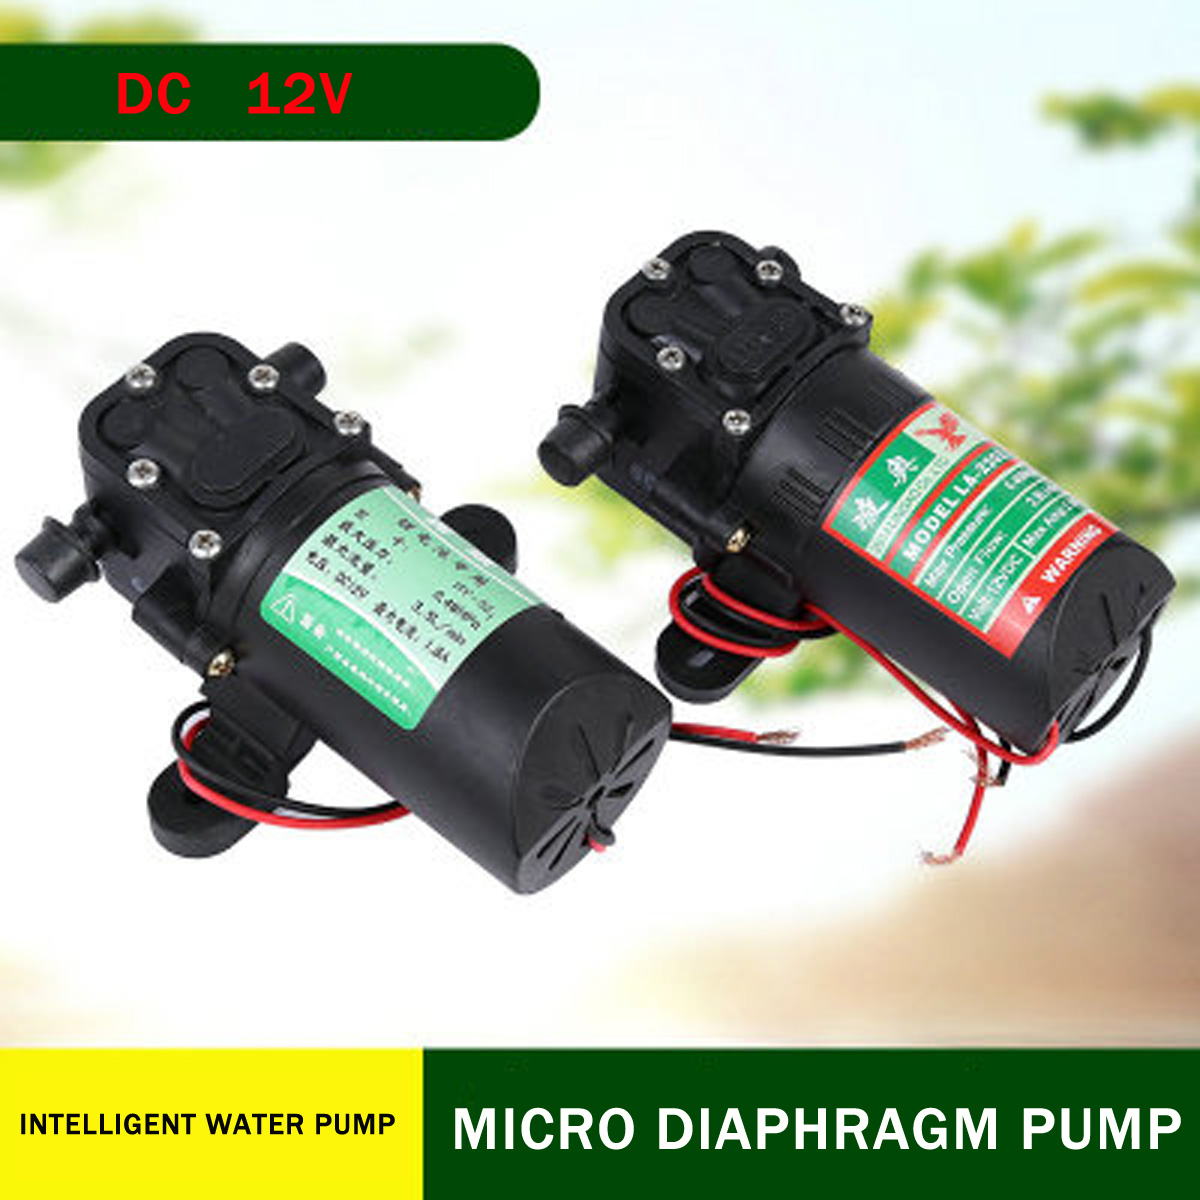 DC 12V 3.5L/min Water High Pressure Diaphragm Water Pump Self Priming Pump Water Sprayer Car Wash